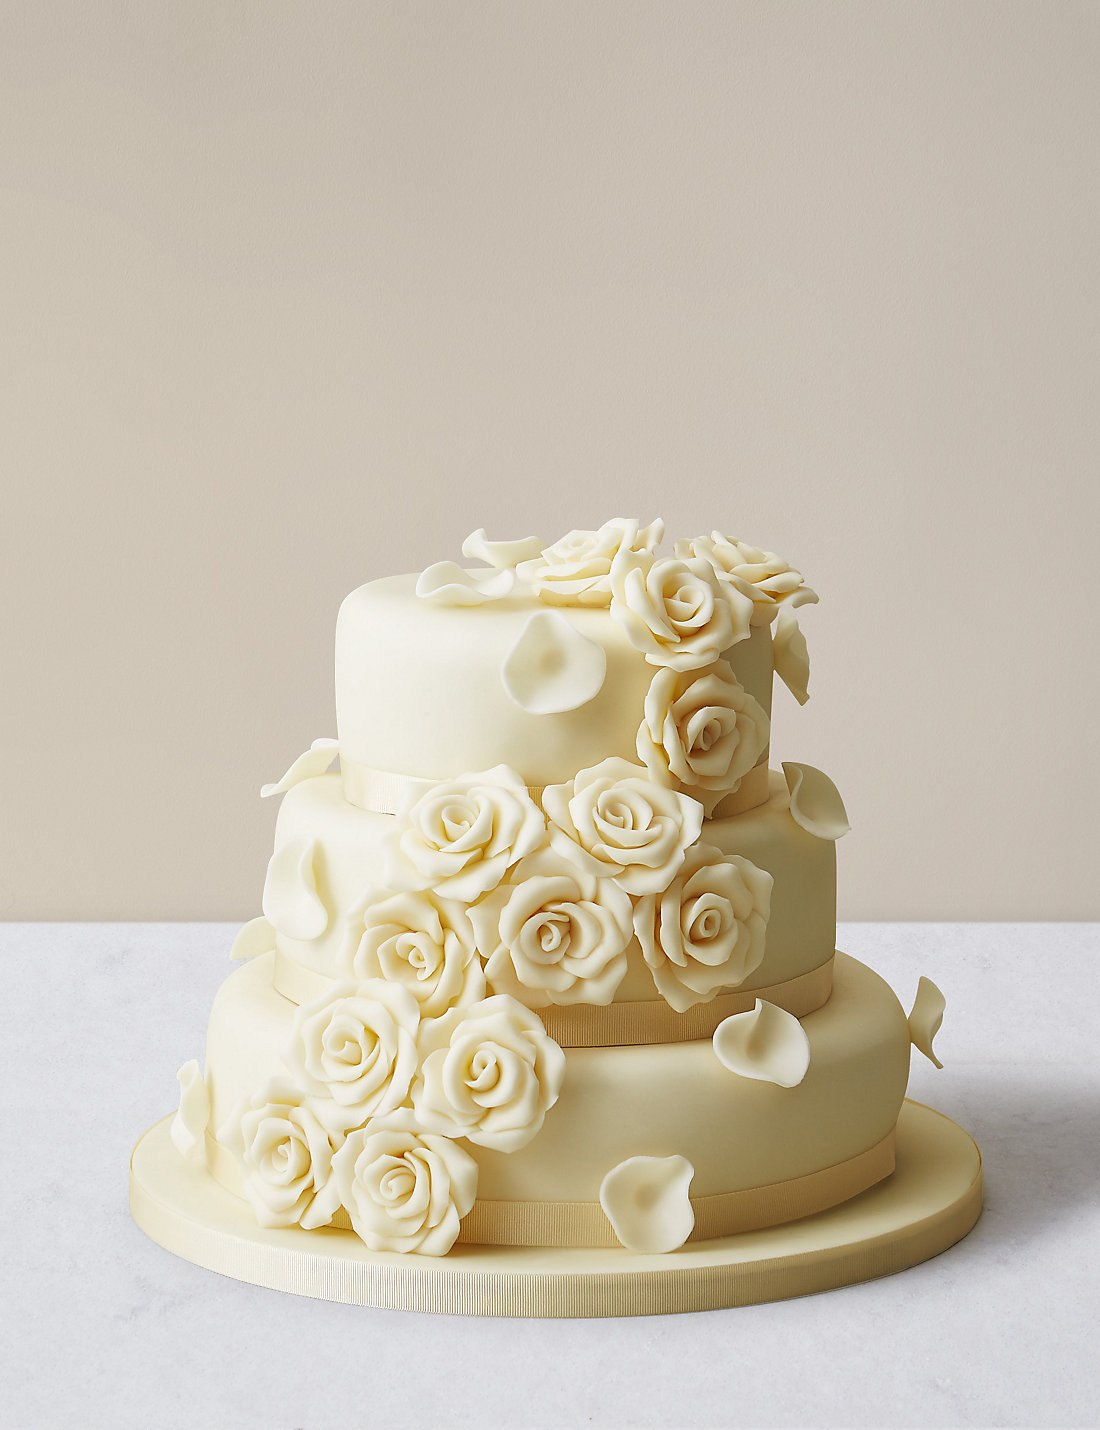 Chocolate Rose Wedding Cake 3 Tier Orted Cakes White Icing